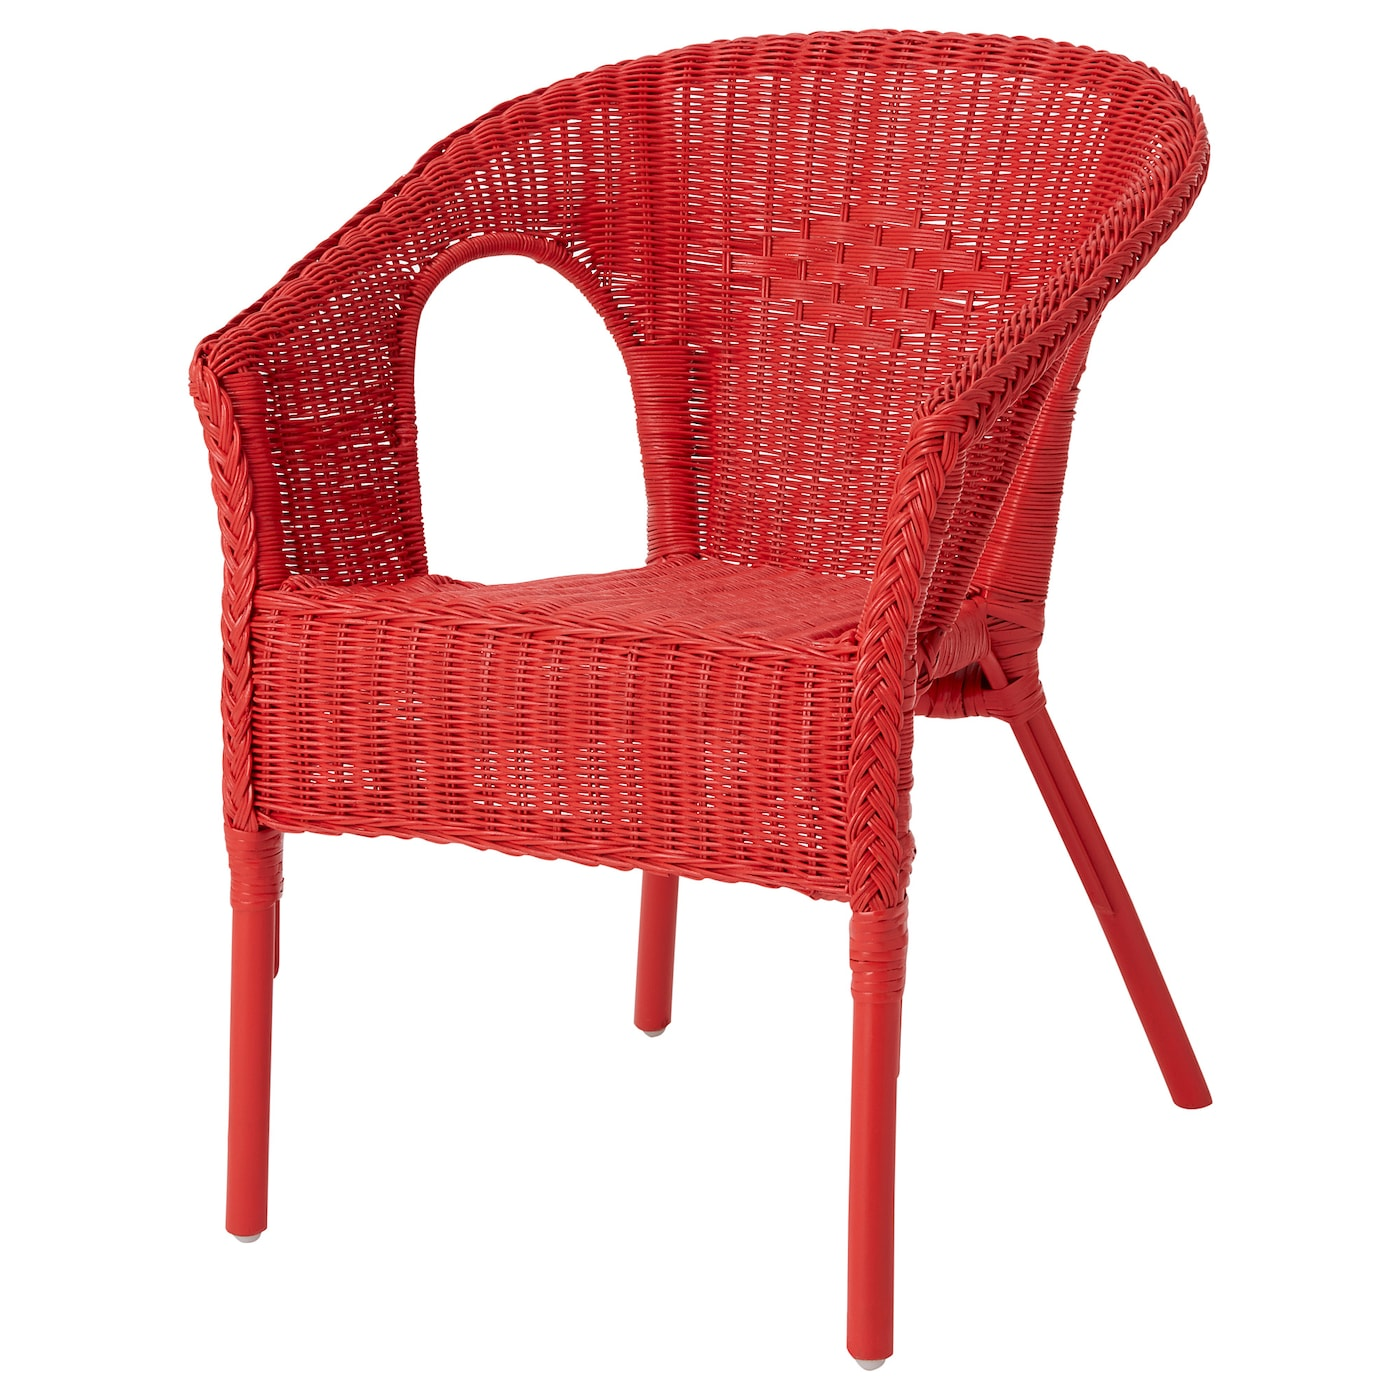 IKEA AGEN chair The furniture is hand-woven and therefore unique.